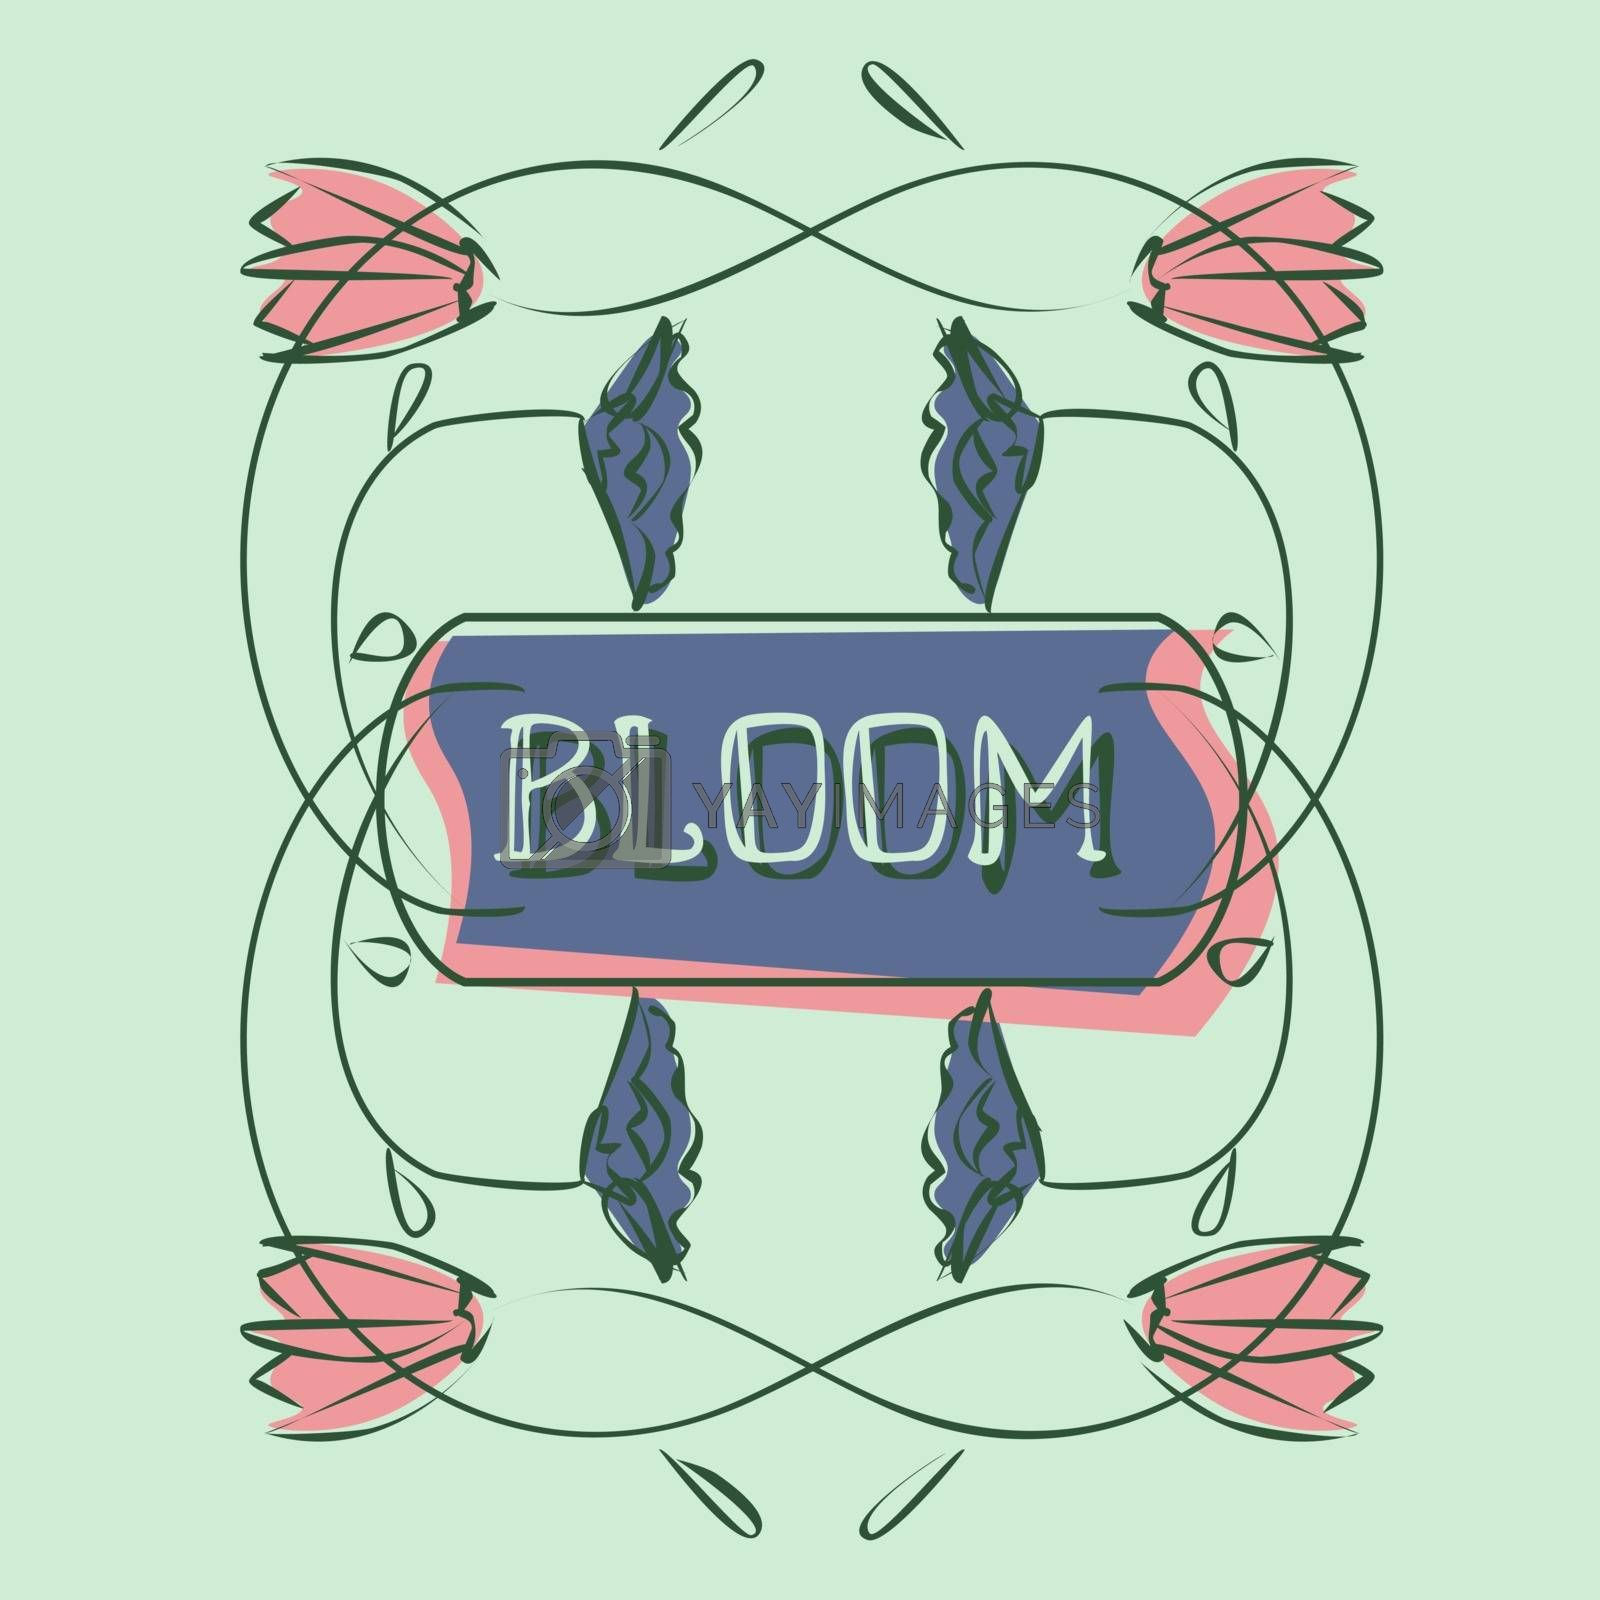 Spring greeting card template in halftones with text 'bloom' and simple hand drawn pink and blue flowers on mint green background